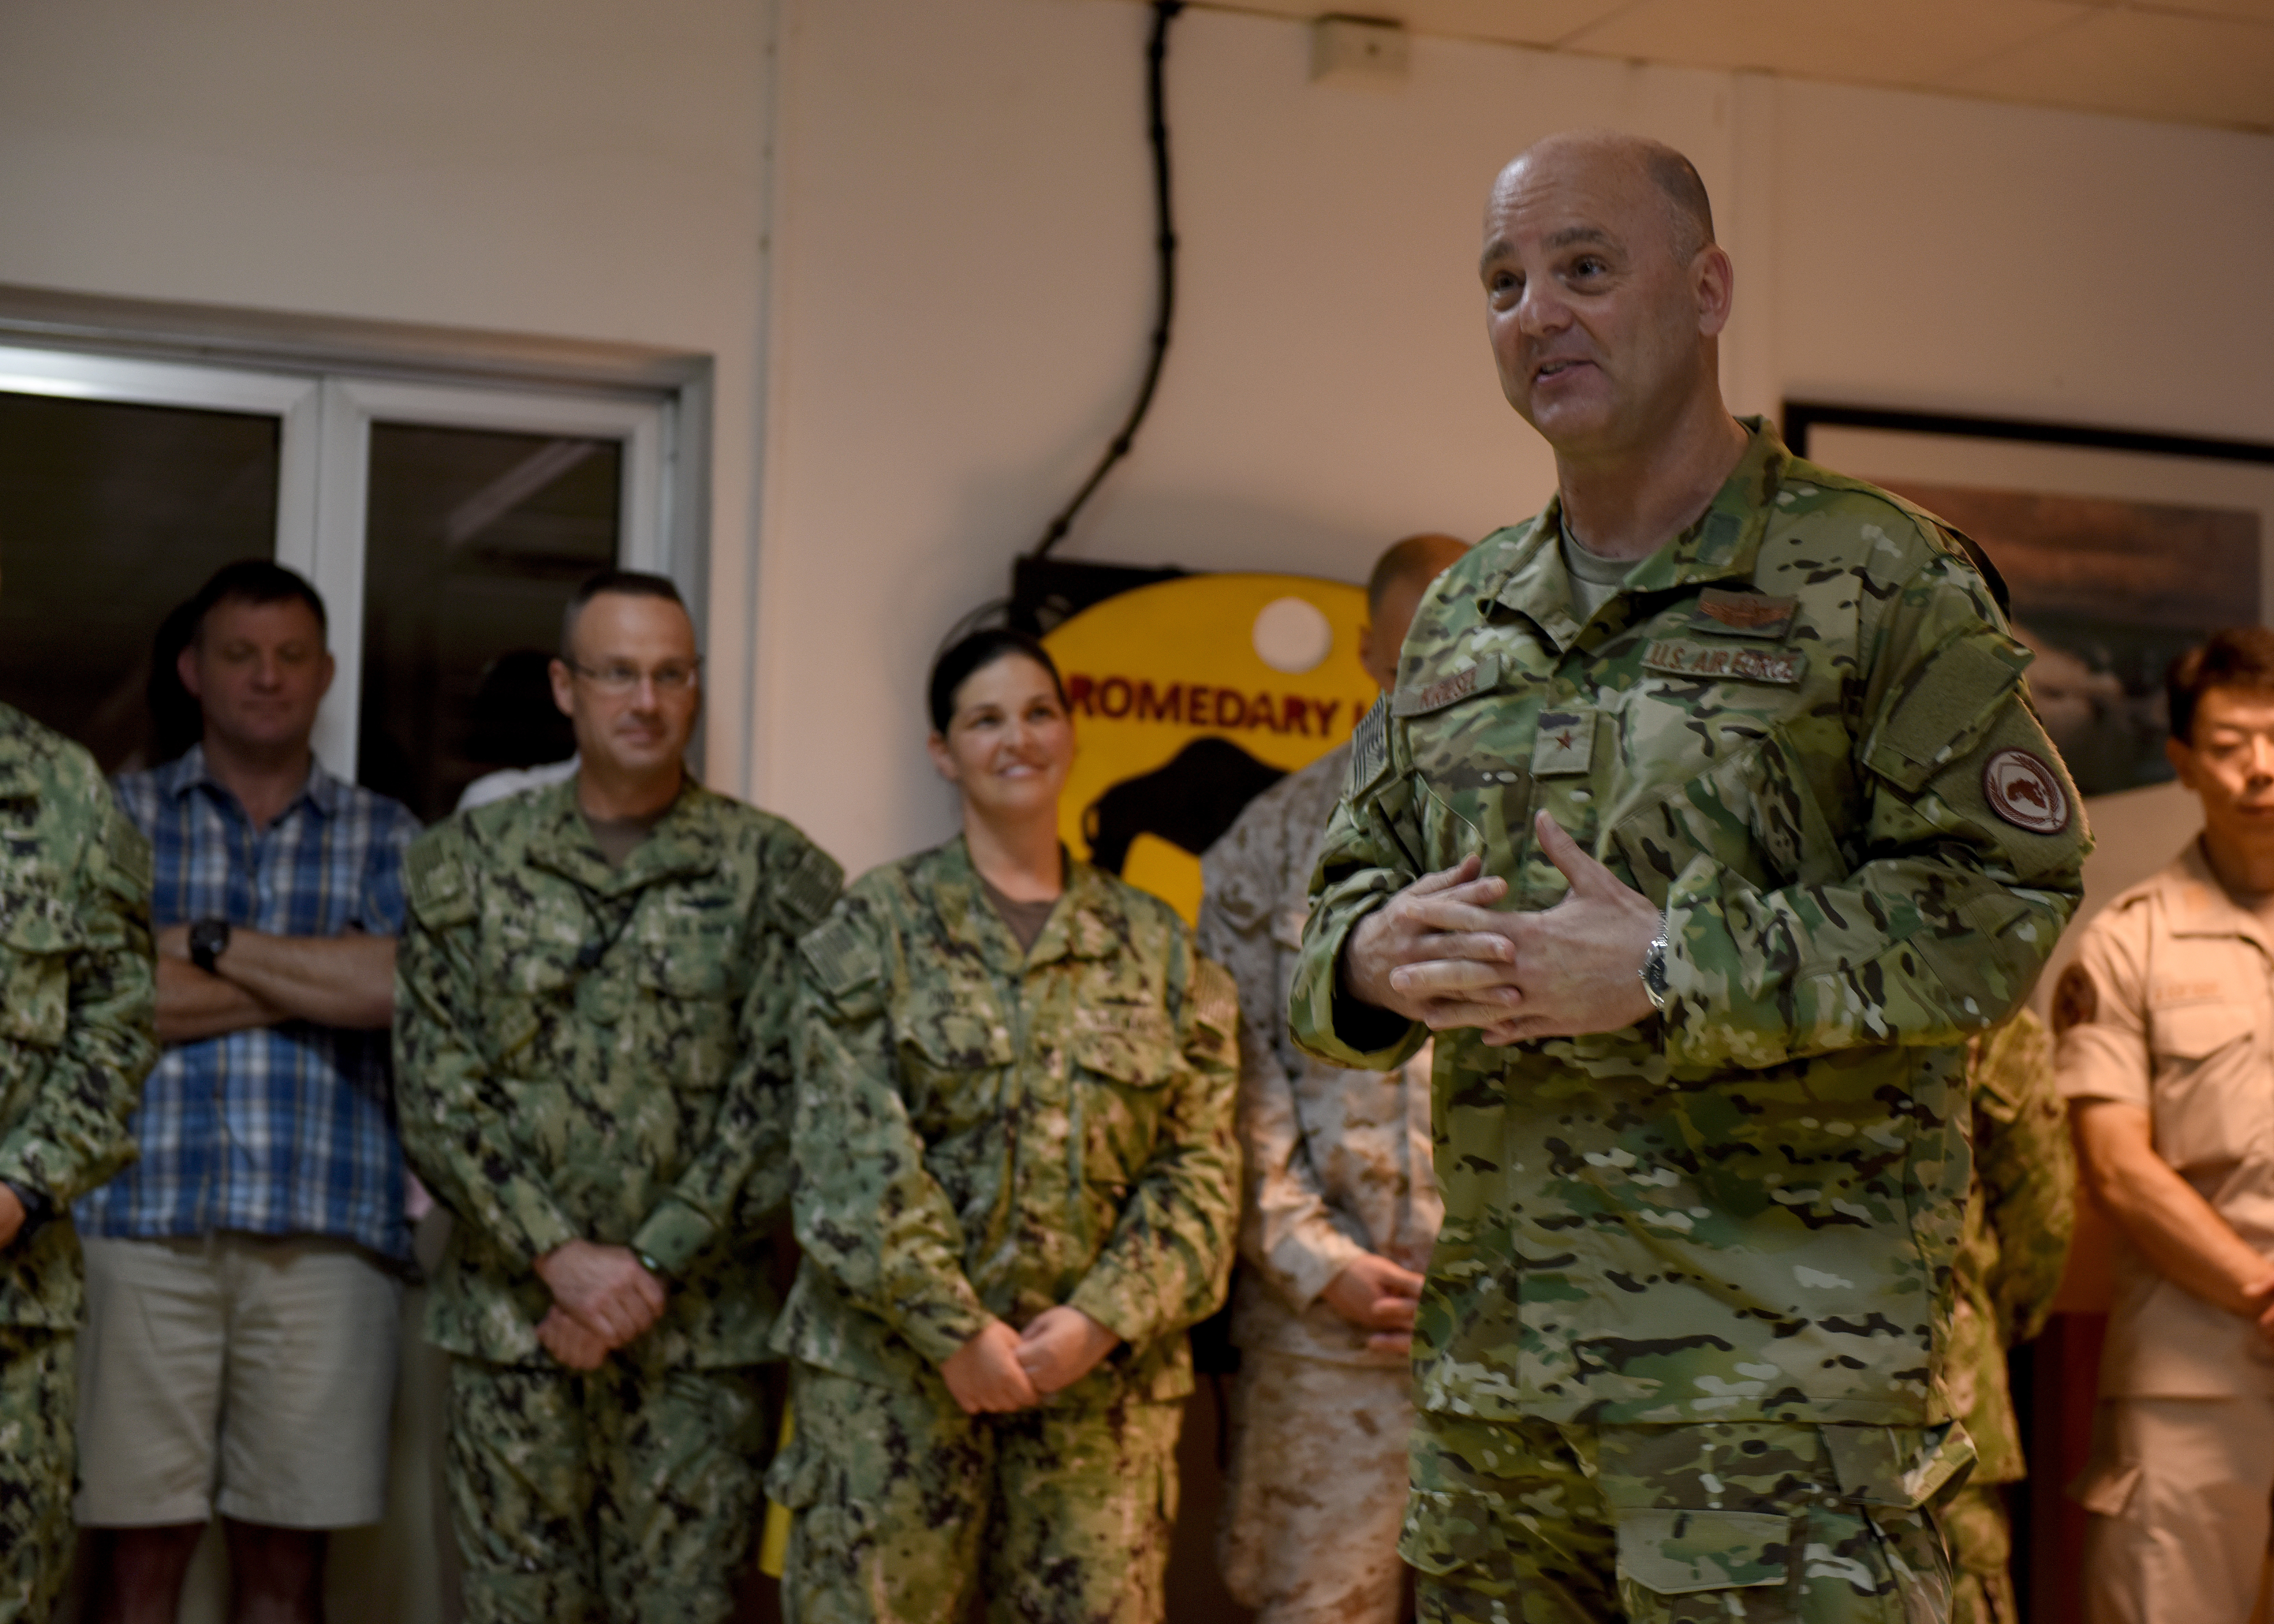 U.S. Air Force Brig. Gen. James R. Kriesel, deputy commanding general of Combined Joint Task Force-Horn of Africa (CJTF-HOA), speaks to multinational military partners during a CJTF-HOA cultural exchange event at Camp Lemonnier, Djibouti, April 24, 2019. CJTF-HOA holds monthly exchange events with multinational military partners affiliated with Camp Lemonnier to strengthen alliances and attract new partners in the combined joint military environment. (U.S. Air Force Photo by Staff Sgt. Franklin R. Ramos)